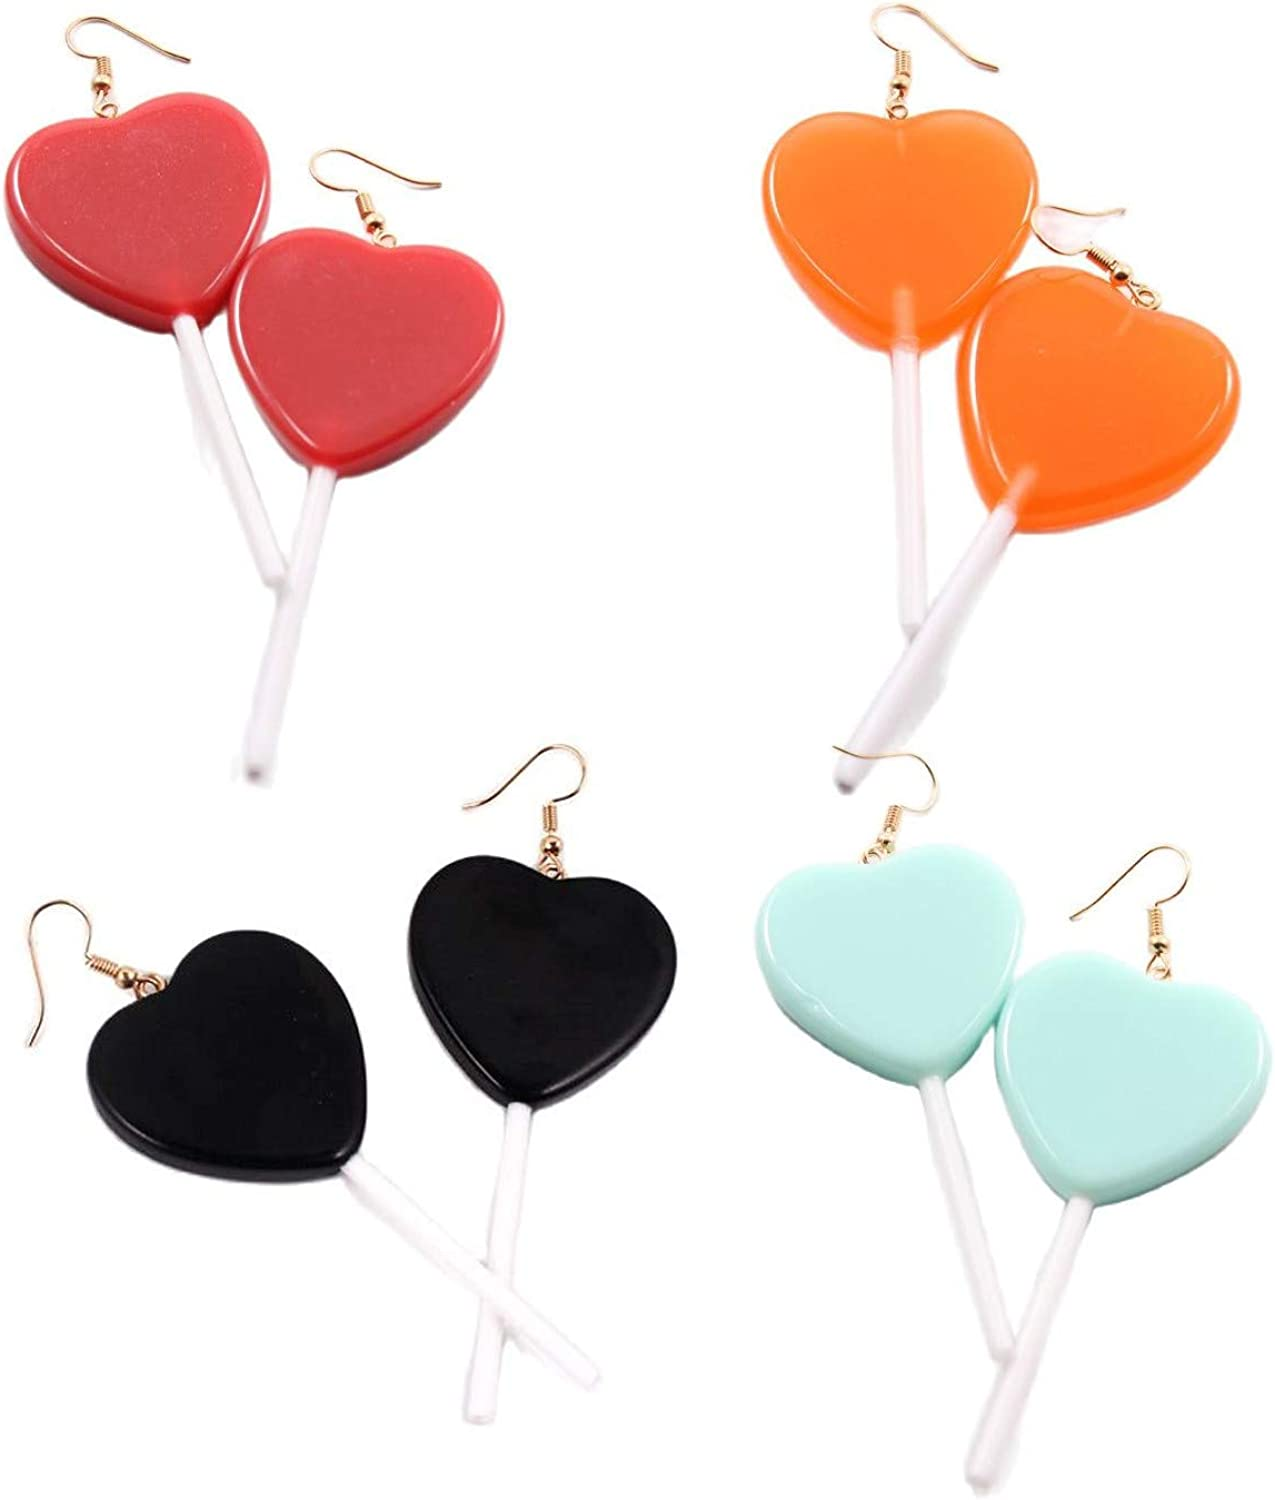 4 Pairs Cute Resin Heart-shaped Lollipop Drop Earring Handmade Candy Color Simulation Food Dangle Earring Trendy Style Multicolor Candy Acrylic Earrings for Women Girl Children Funny Jewelry-Deep